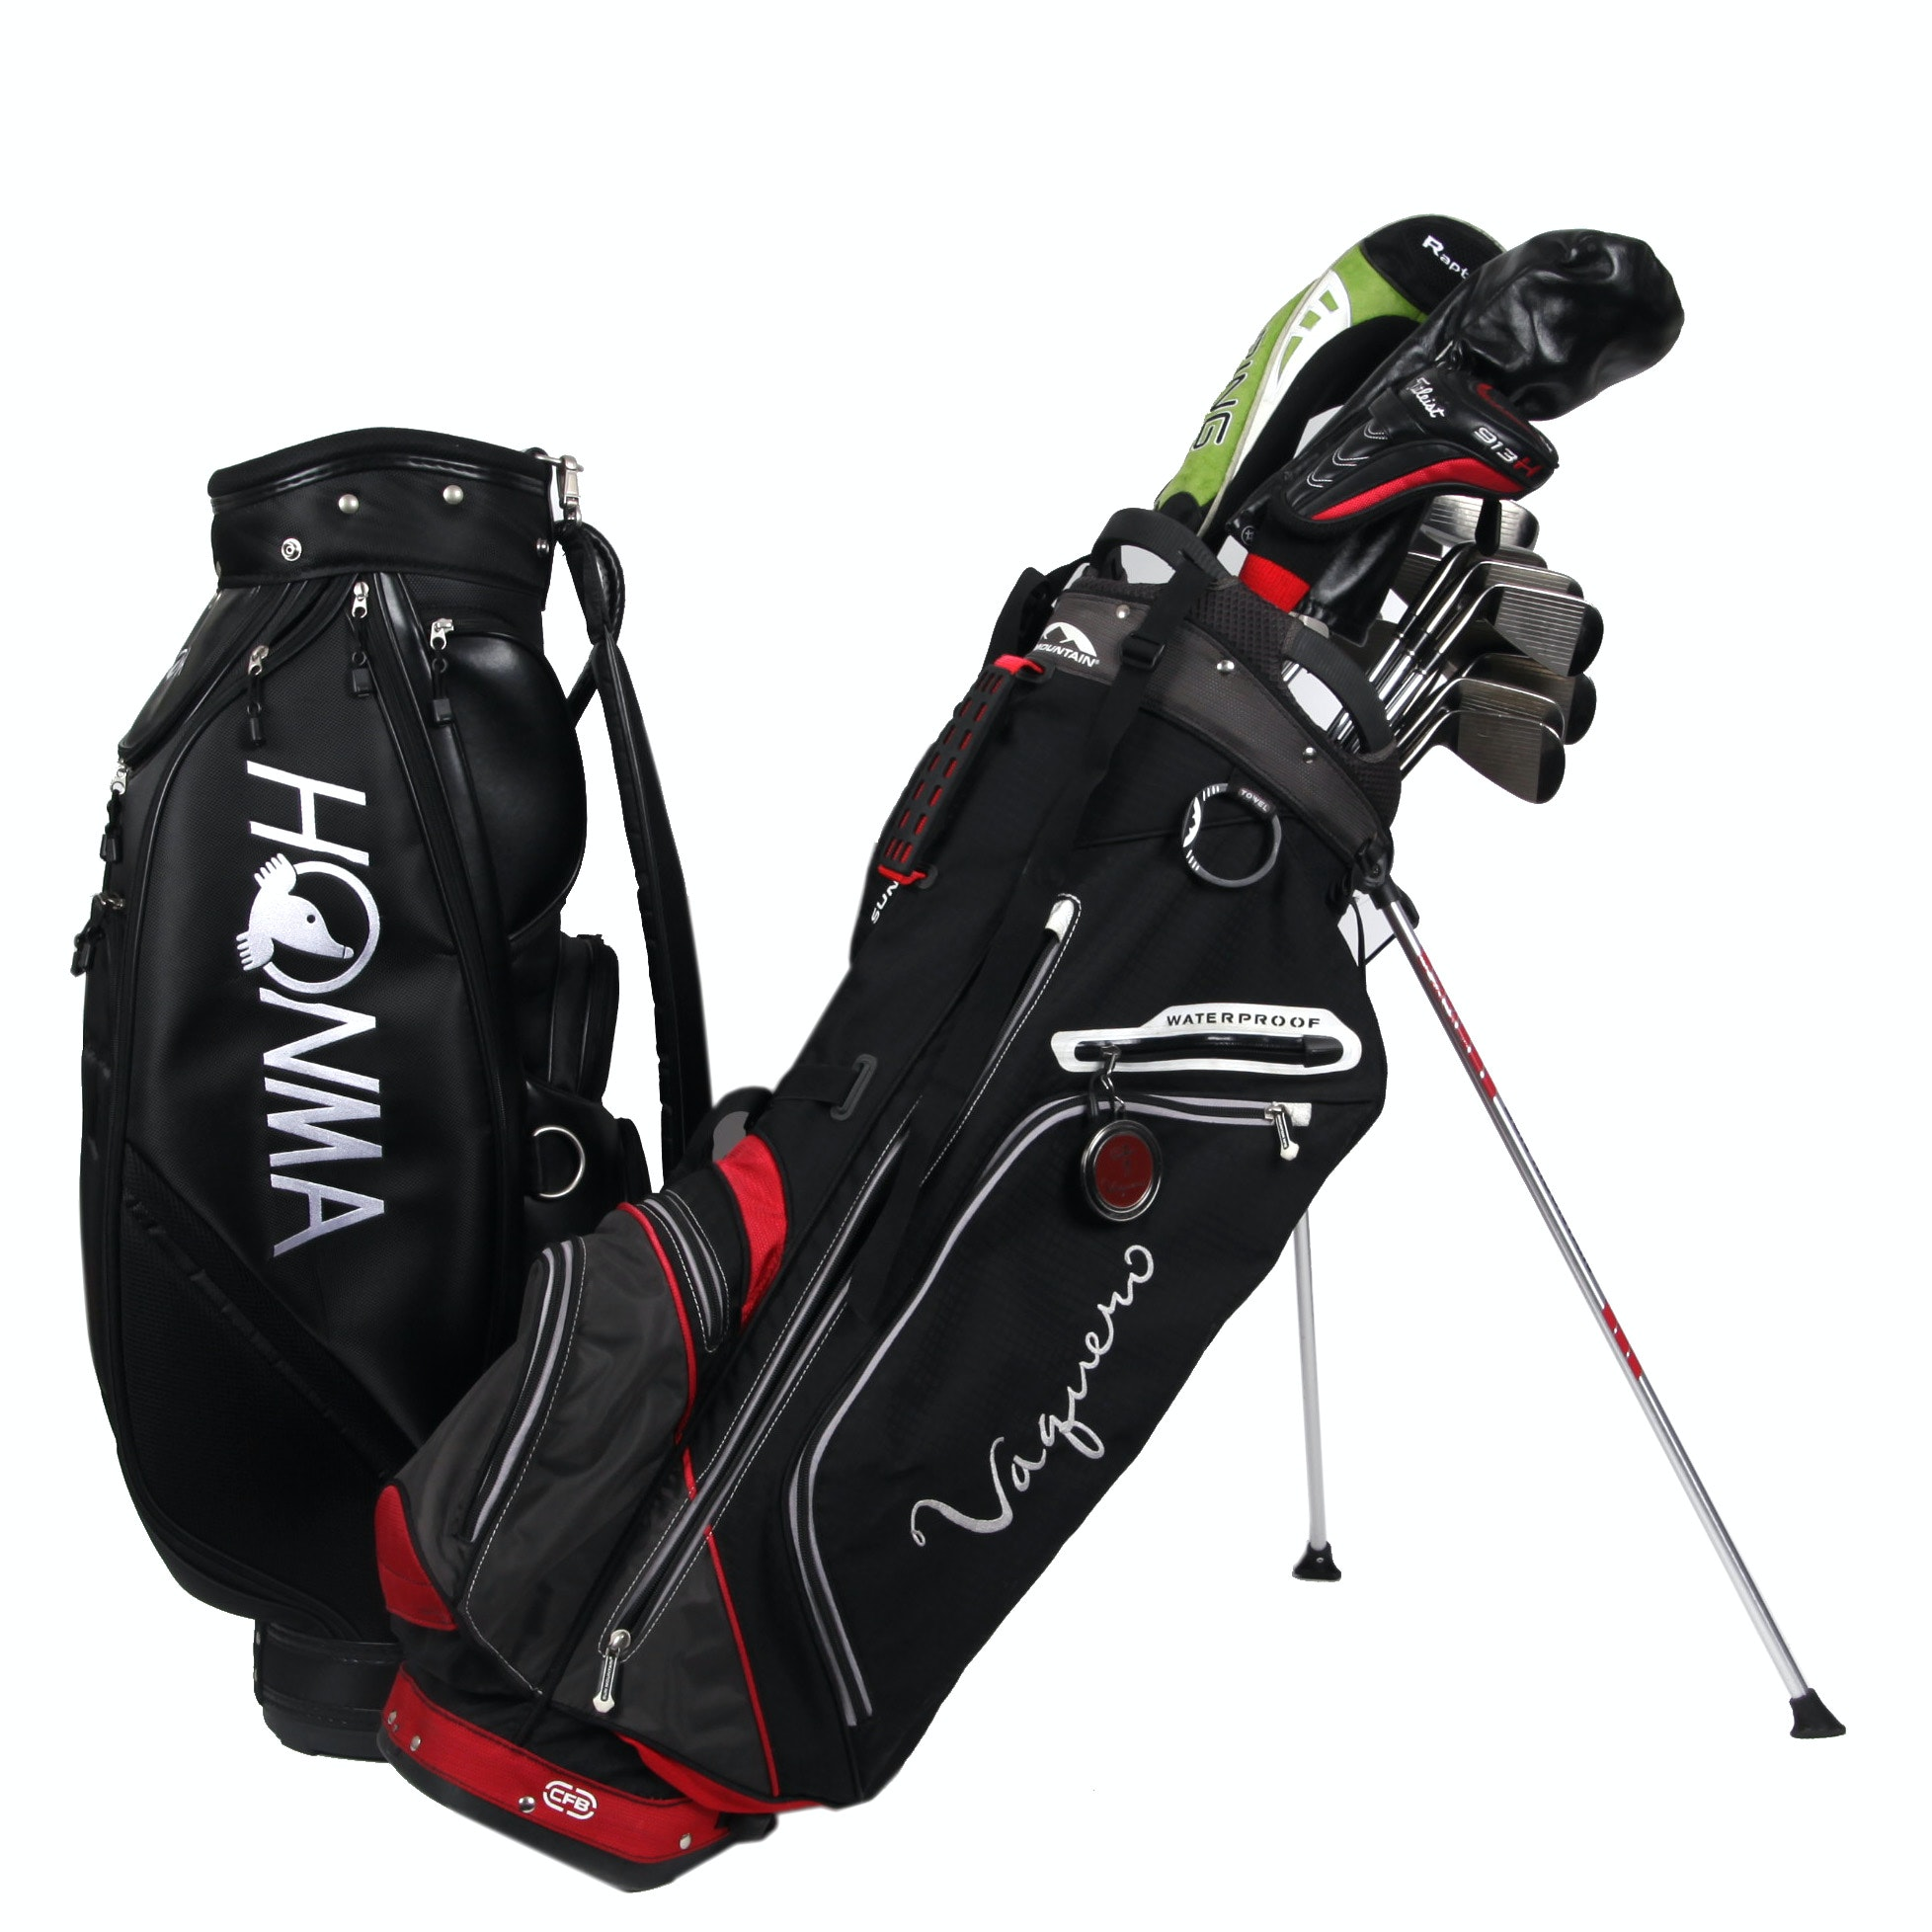 Honma and Vaquero Golf Bags With Ping, CB3 and Idea Clubs